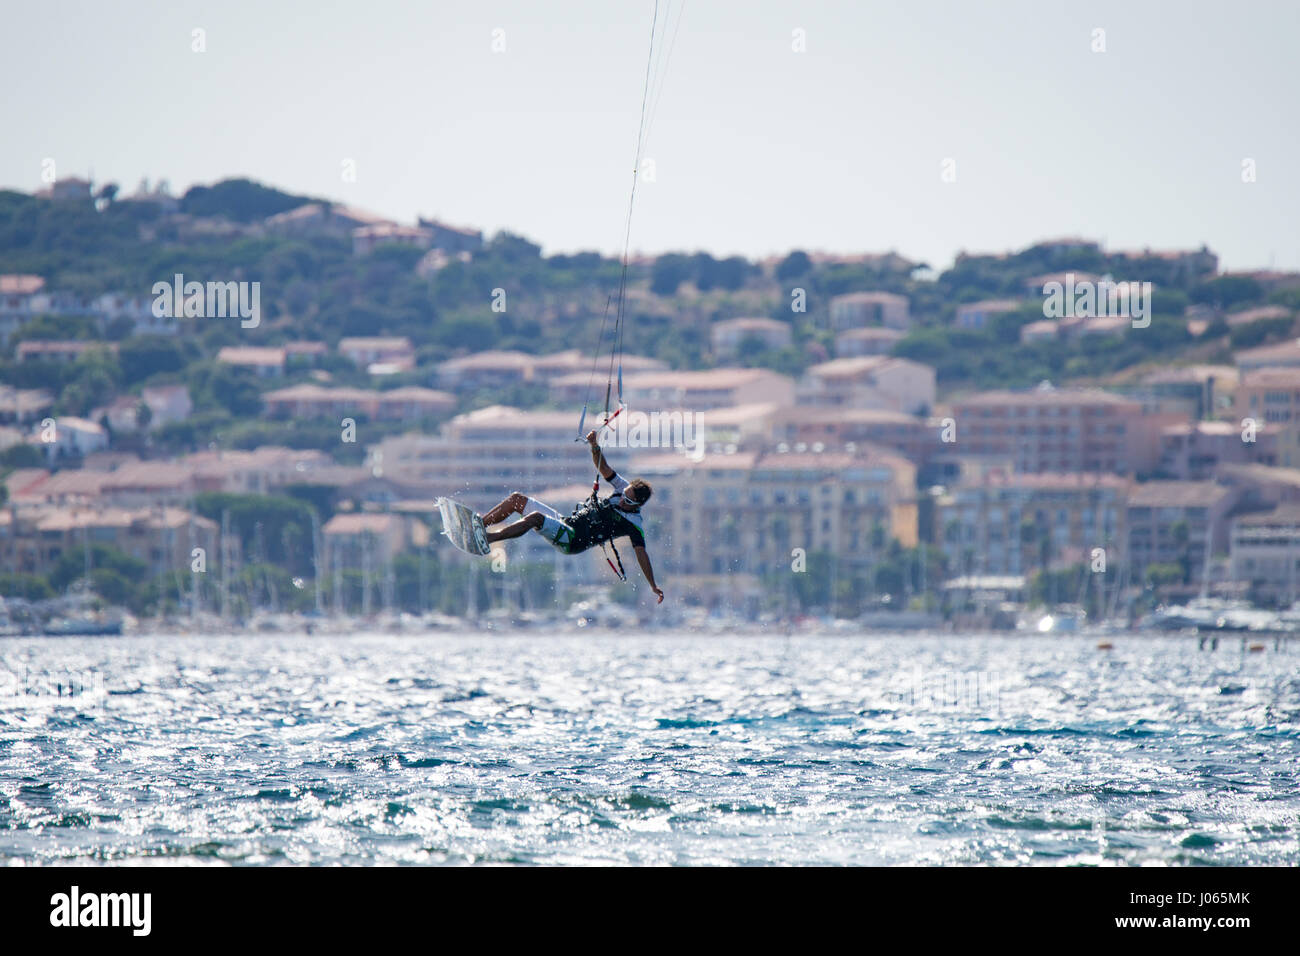 A kitesurfer in Calvi, Corsica. Corsica is the most mountainous Mediterranean island and is located in the west - Stock Image